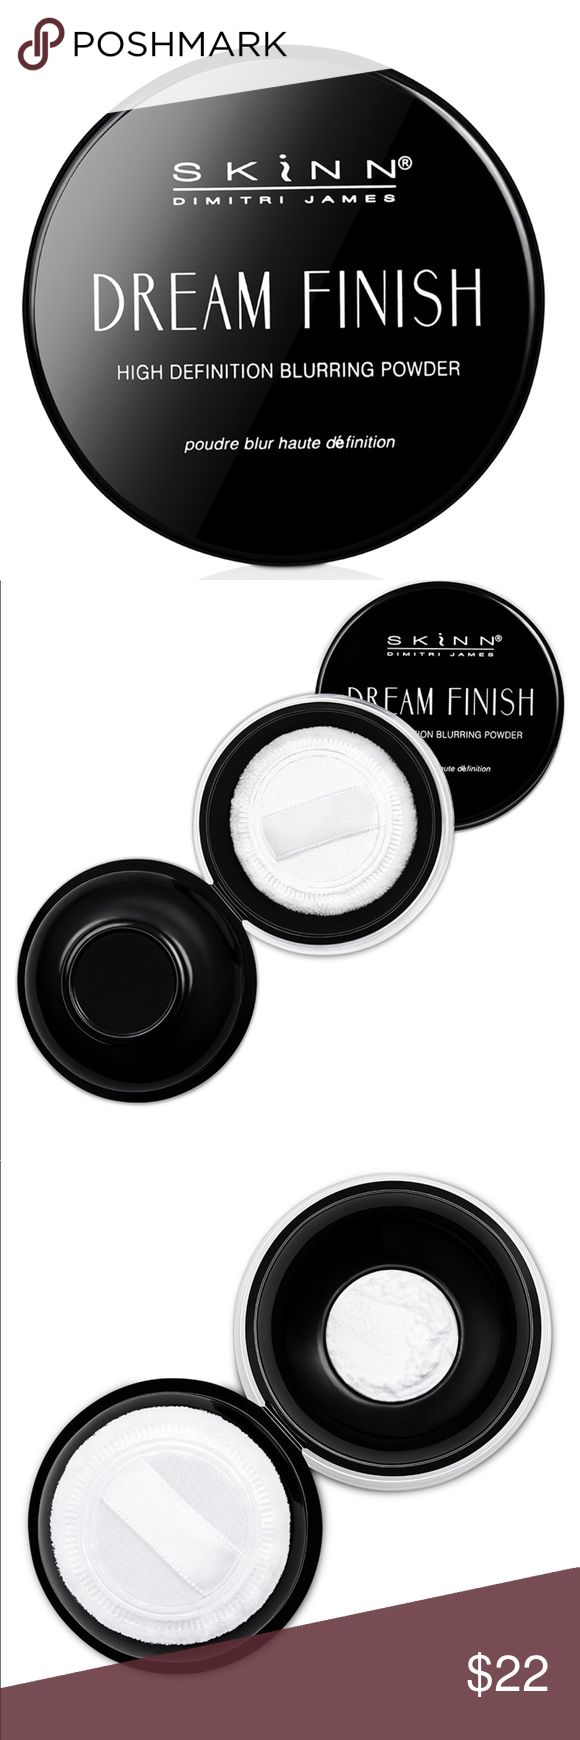 SKINN Dream Finish high definition blurring powder Helps mattify unwanted shine while softening the look of imperfections, pores and fine lines for a radiant complexion. Talc-free translucent powder enriched with hyaluronic acid to help keep your skin hydrated. Includes vitamin C to help brighten the look of dull skin and vitamin B for its soothing properties. The powders are ultra-fine, silky and super lightweight so you never feel like you have anything on except a gorgeous soft-focus…